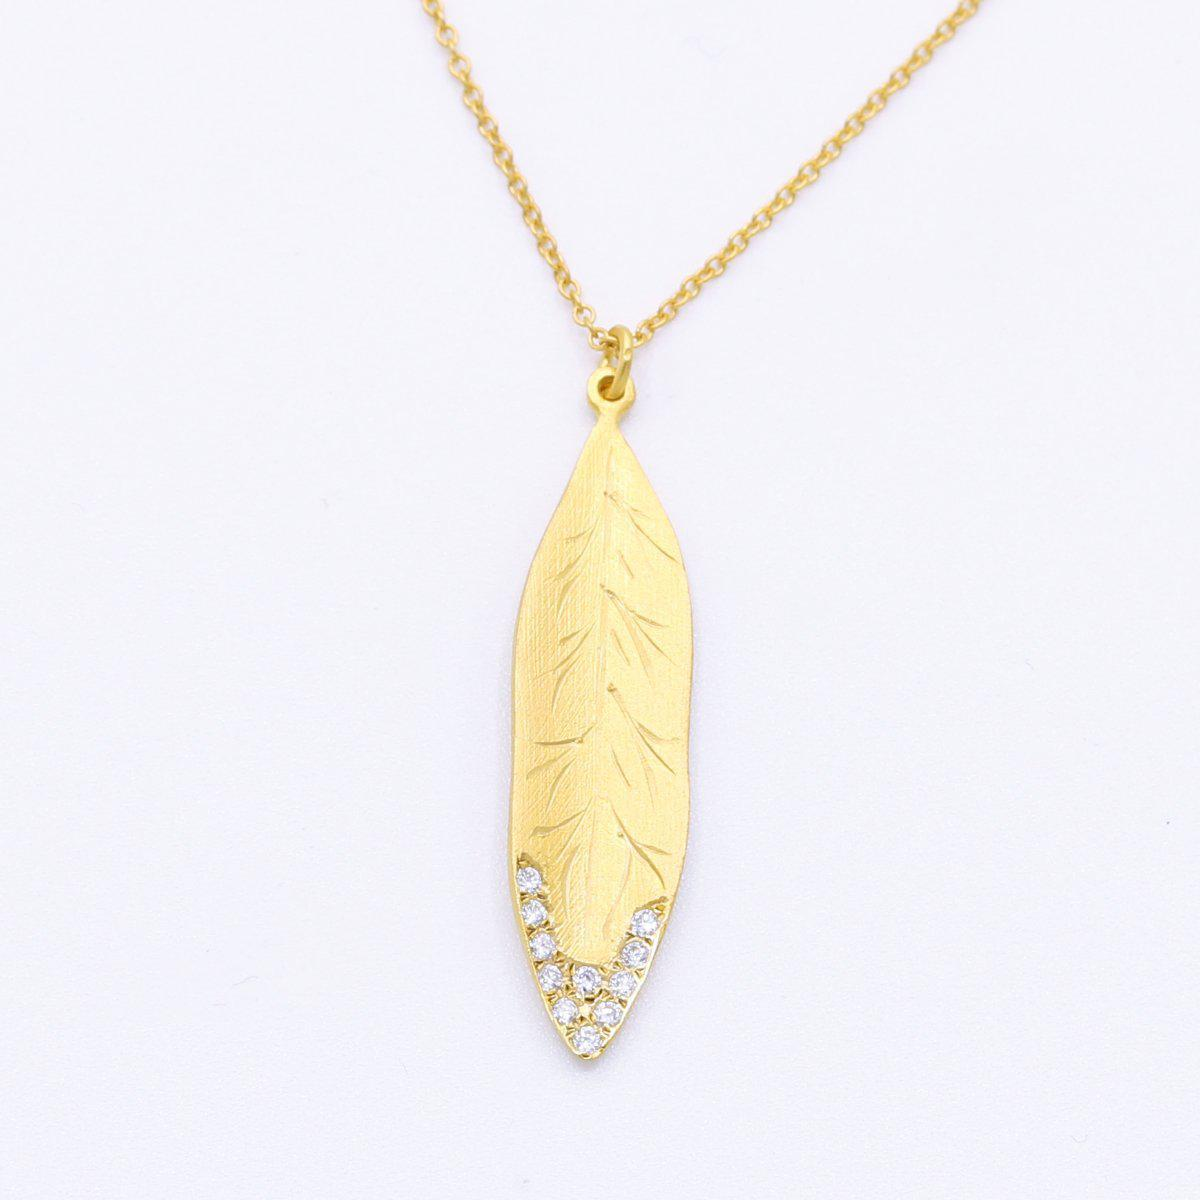 Marika Diamond & 14k Gold Necklace - M4885-Marika-Renee Taylor Gallery